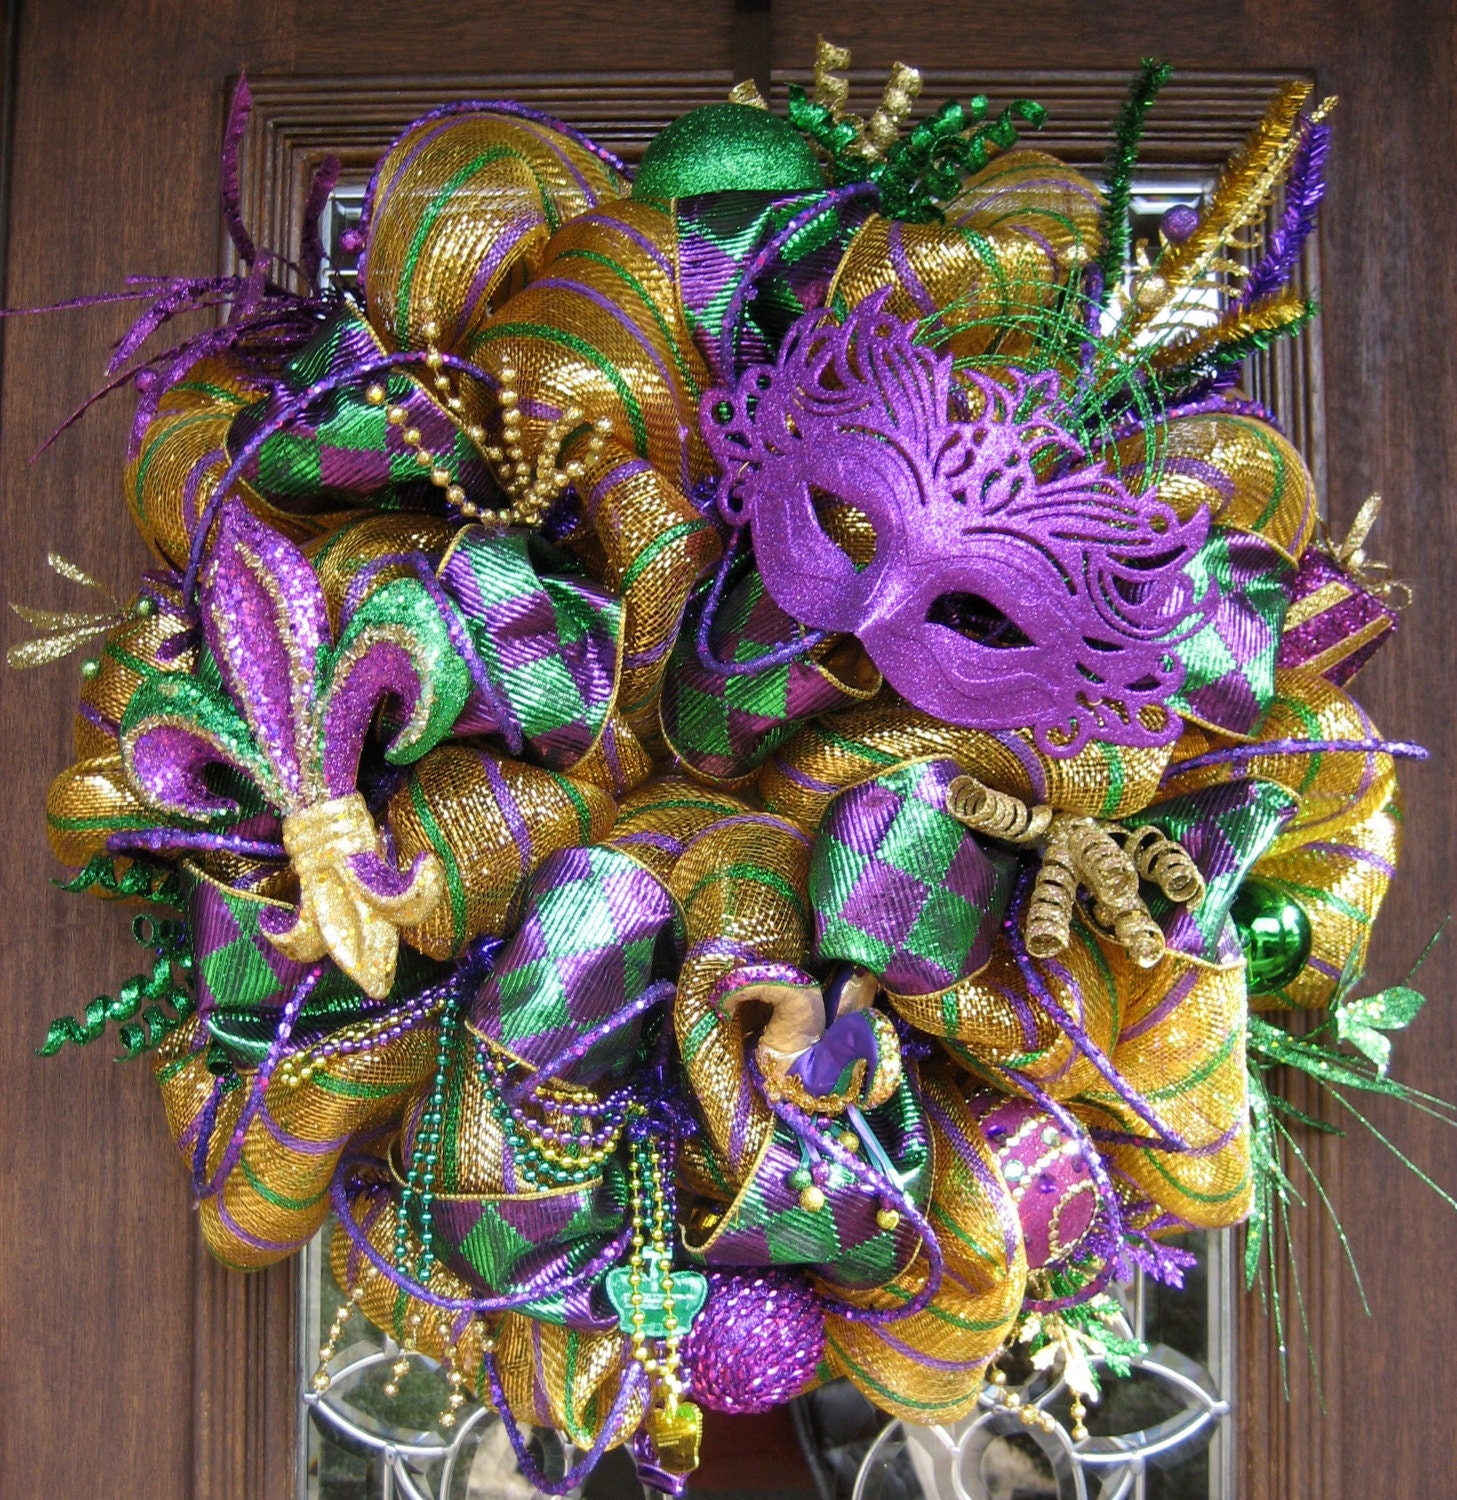 Deluxe deco mesh mardi gras wreath with purple mask by